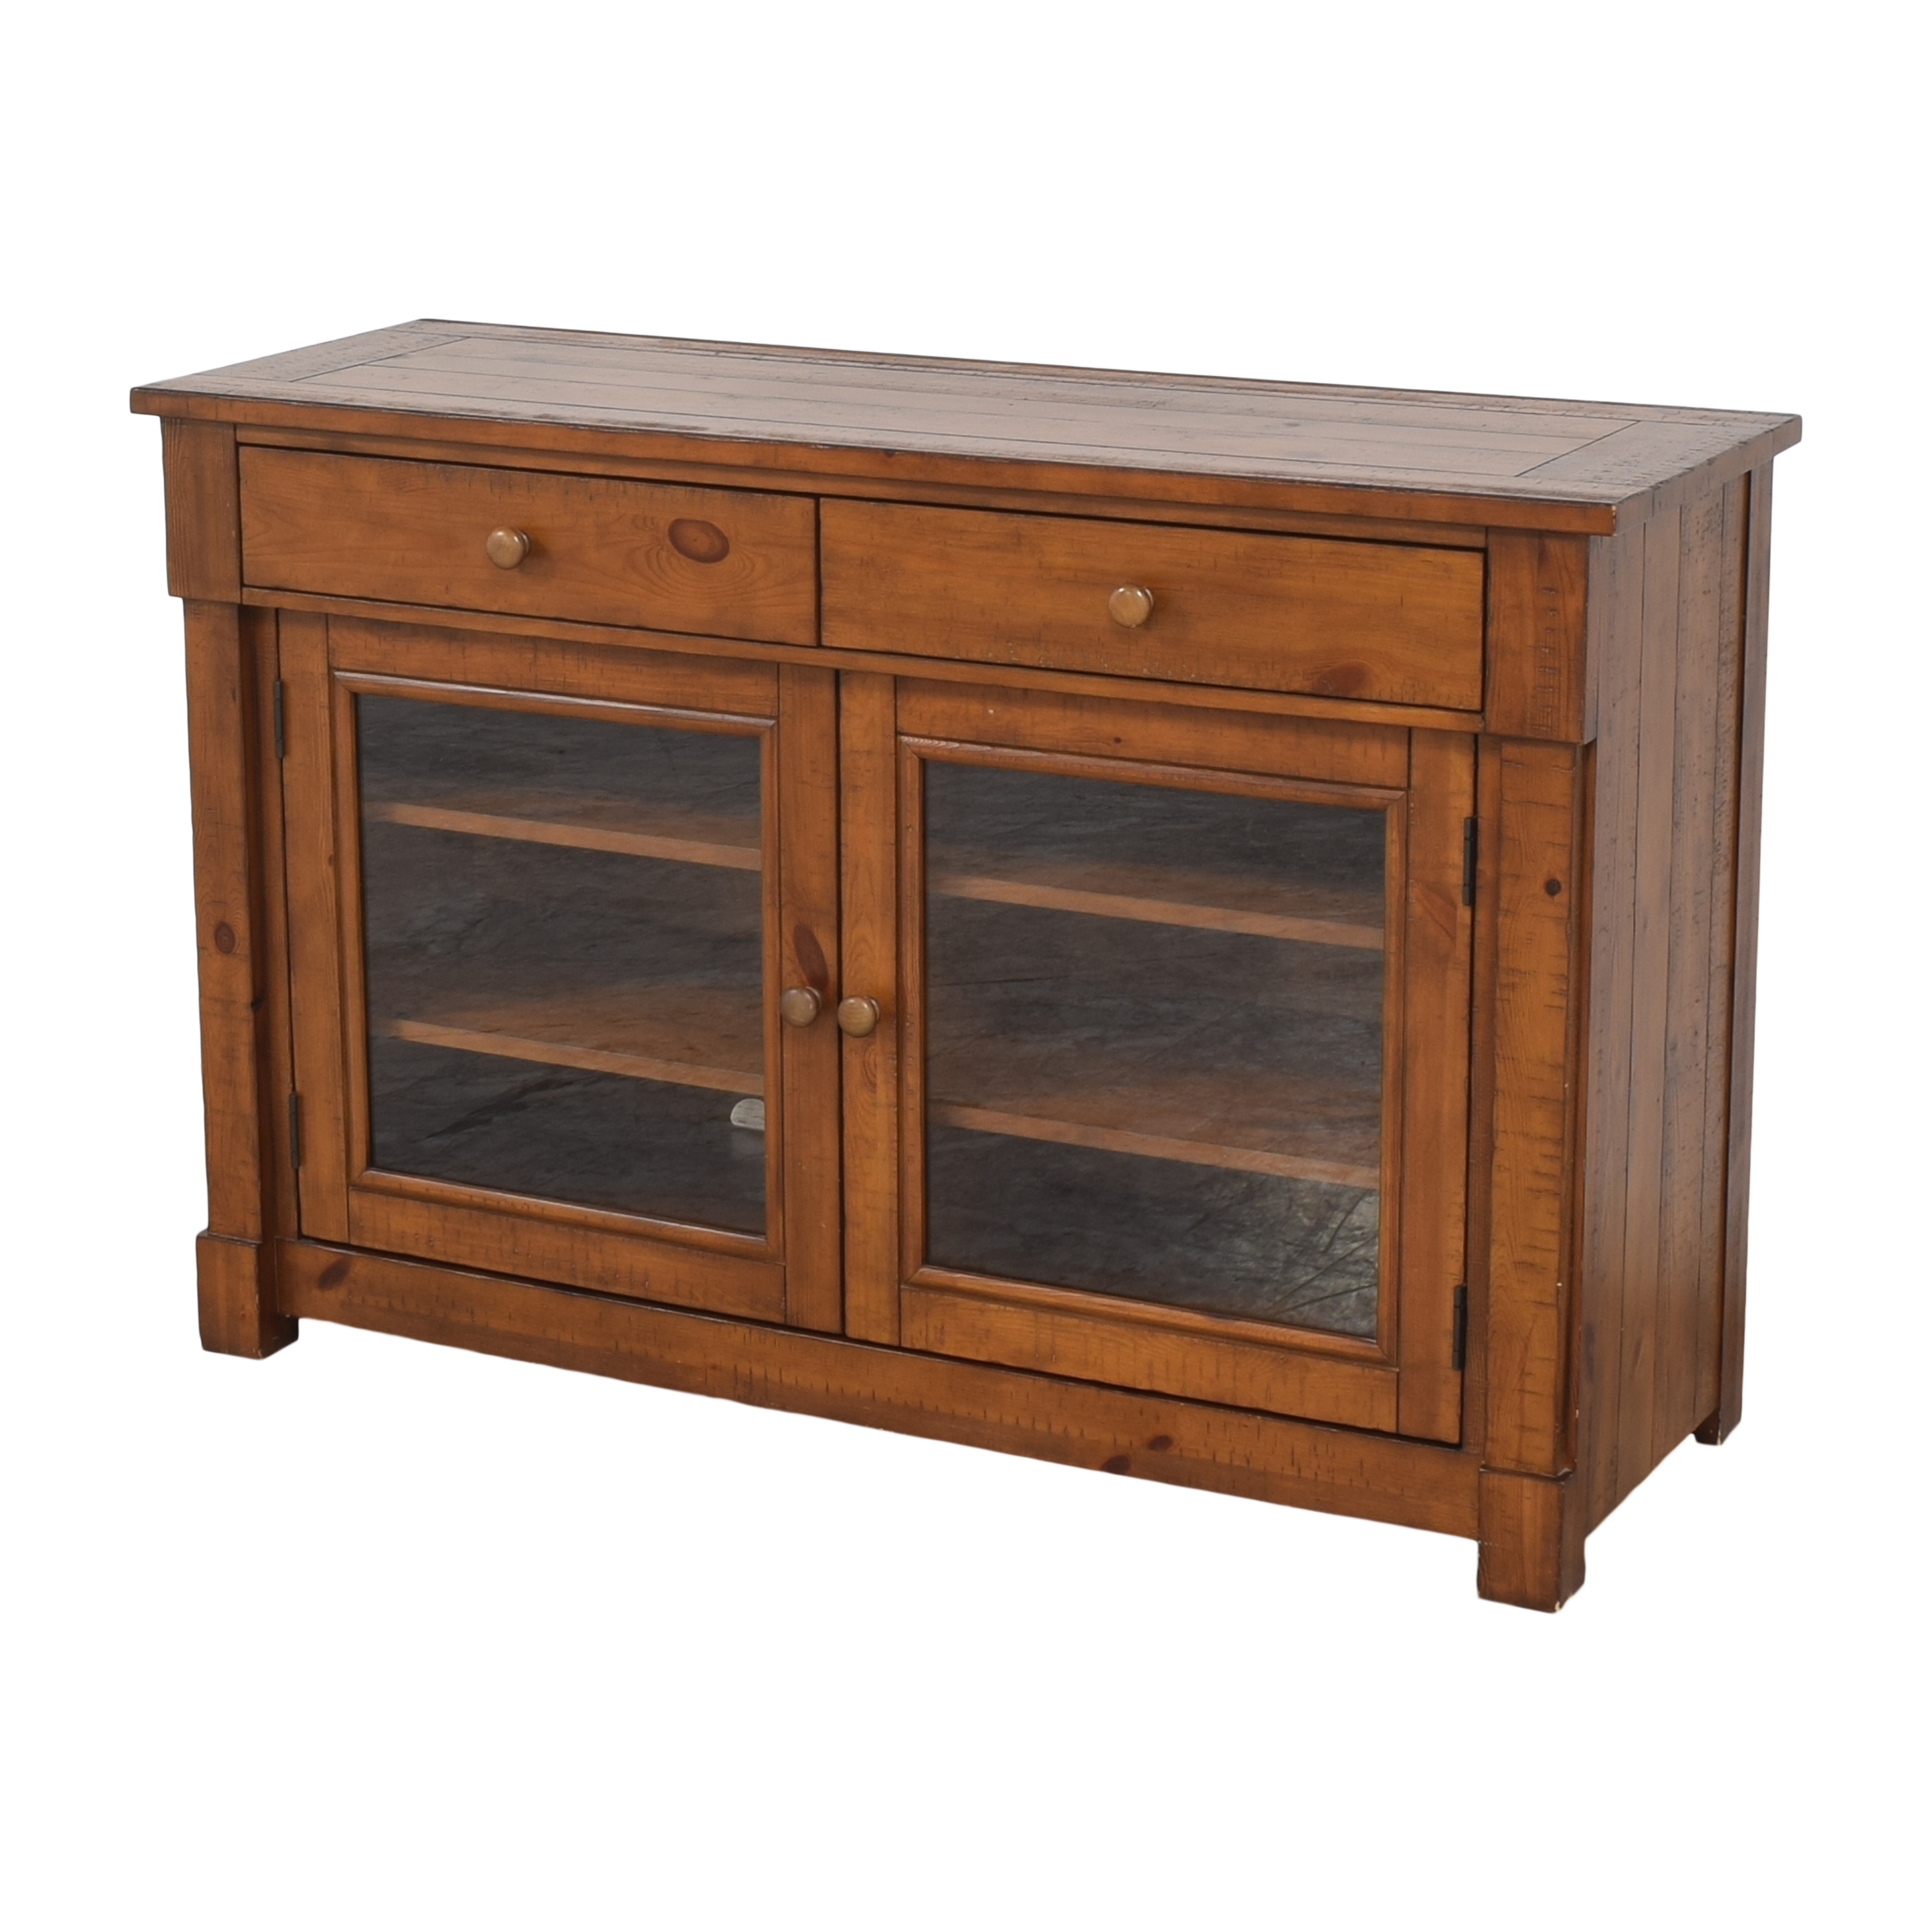 Pottery Barn Pottery Barn Buffet Sideboard dimensions